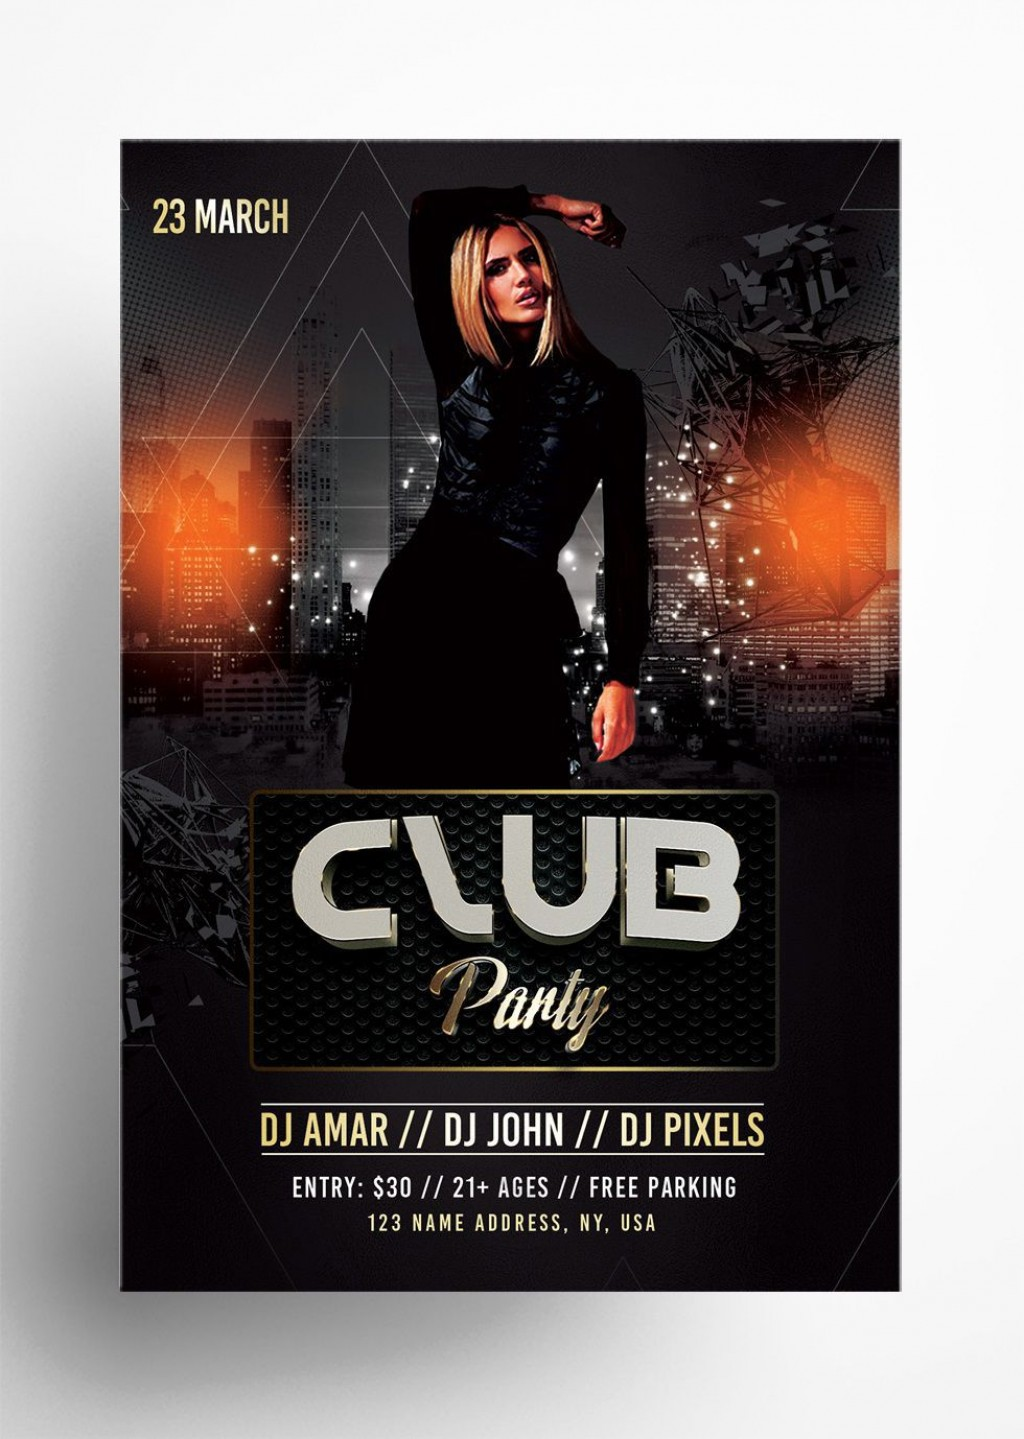 005 Shocking Club Party Flyer Template Free Design Large